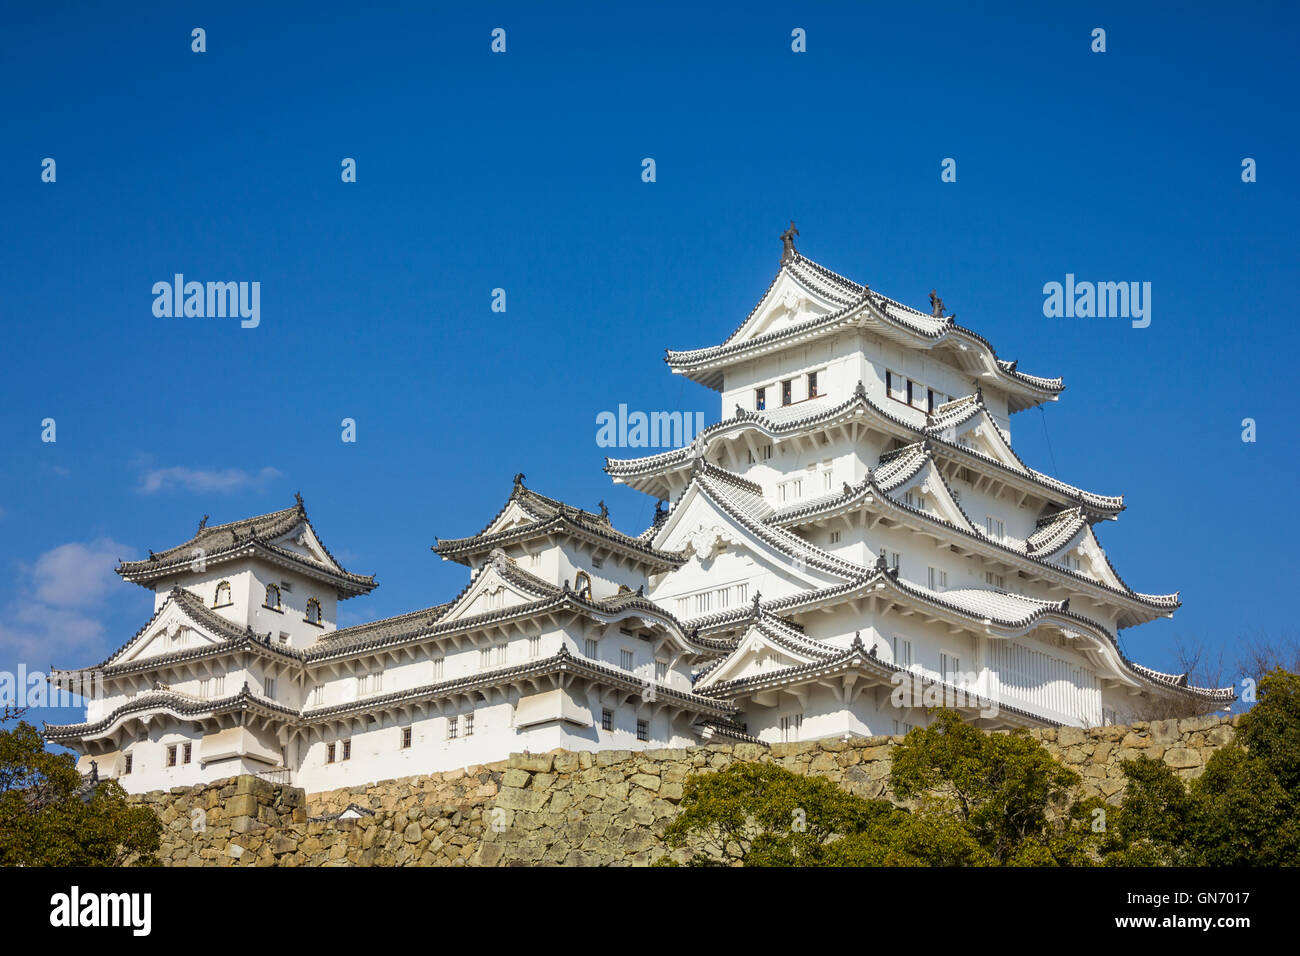 Himeji castle in hyogo prefecture japan stock photo 116323683 alamy himeji castle in hyogo prefecture japan publicscrutiny Choice Image